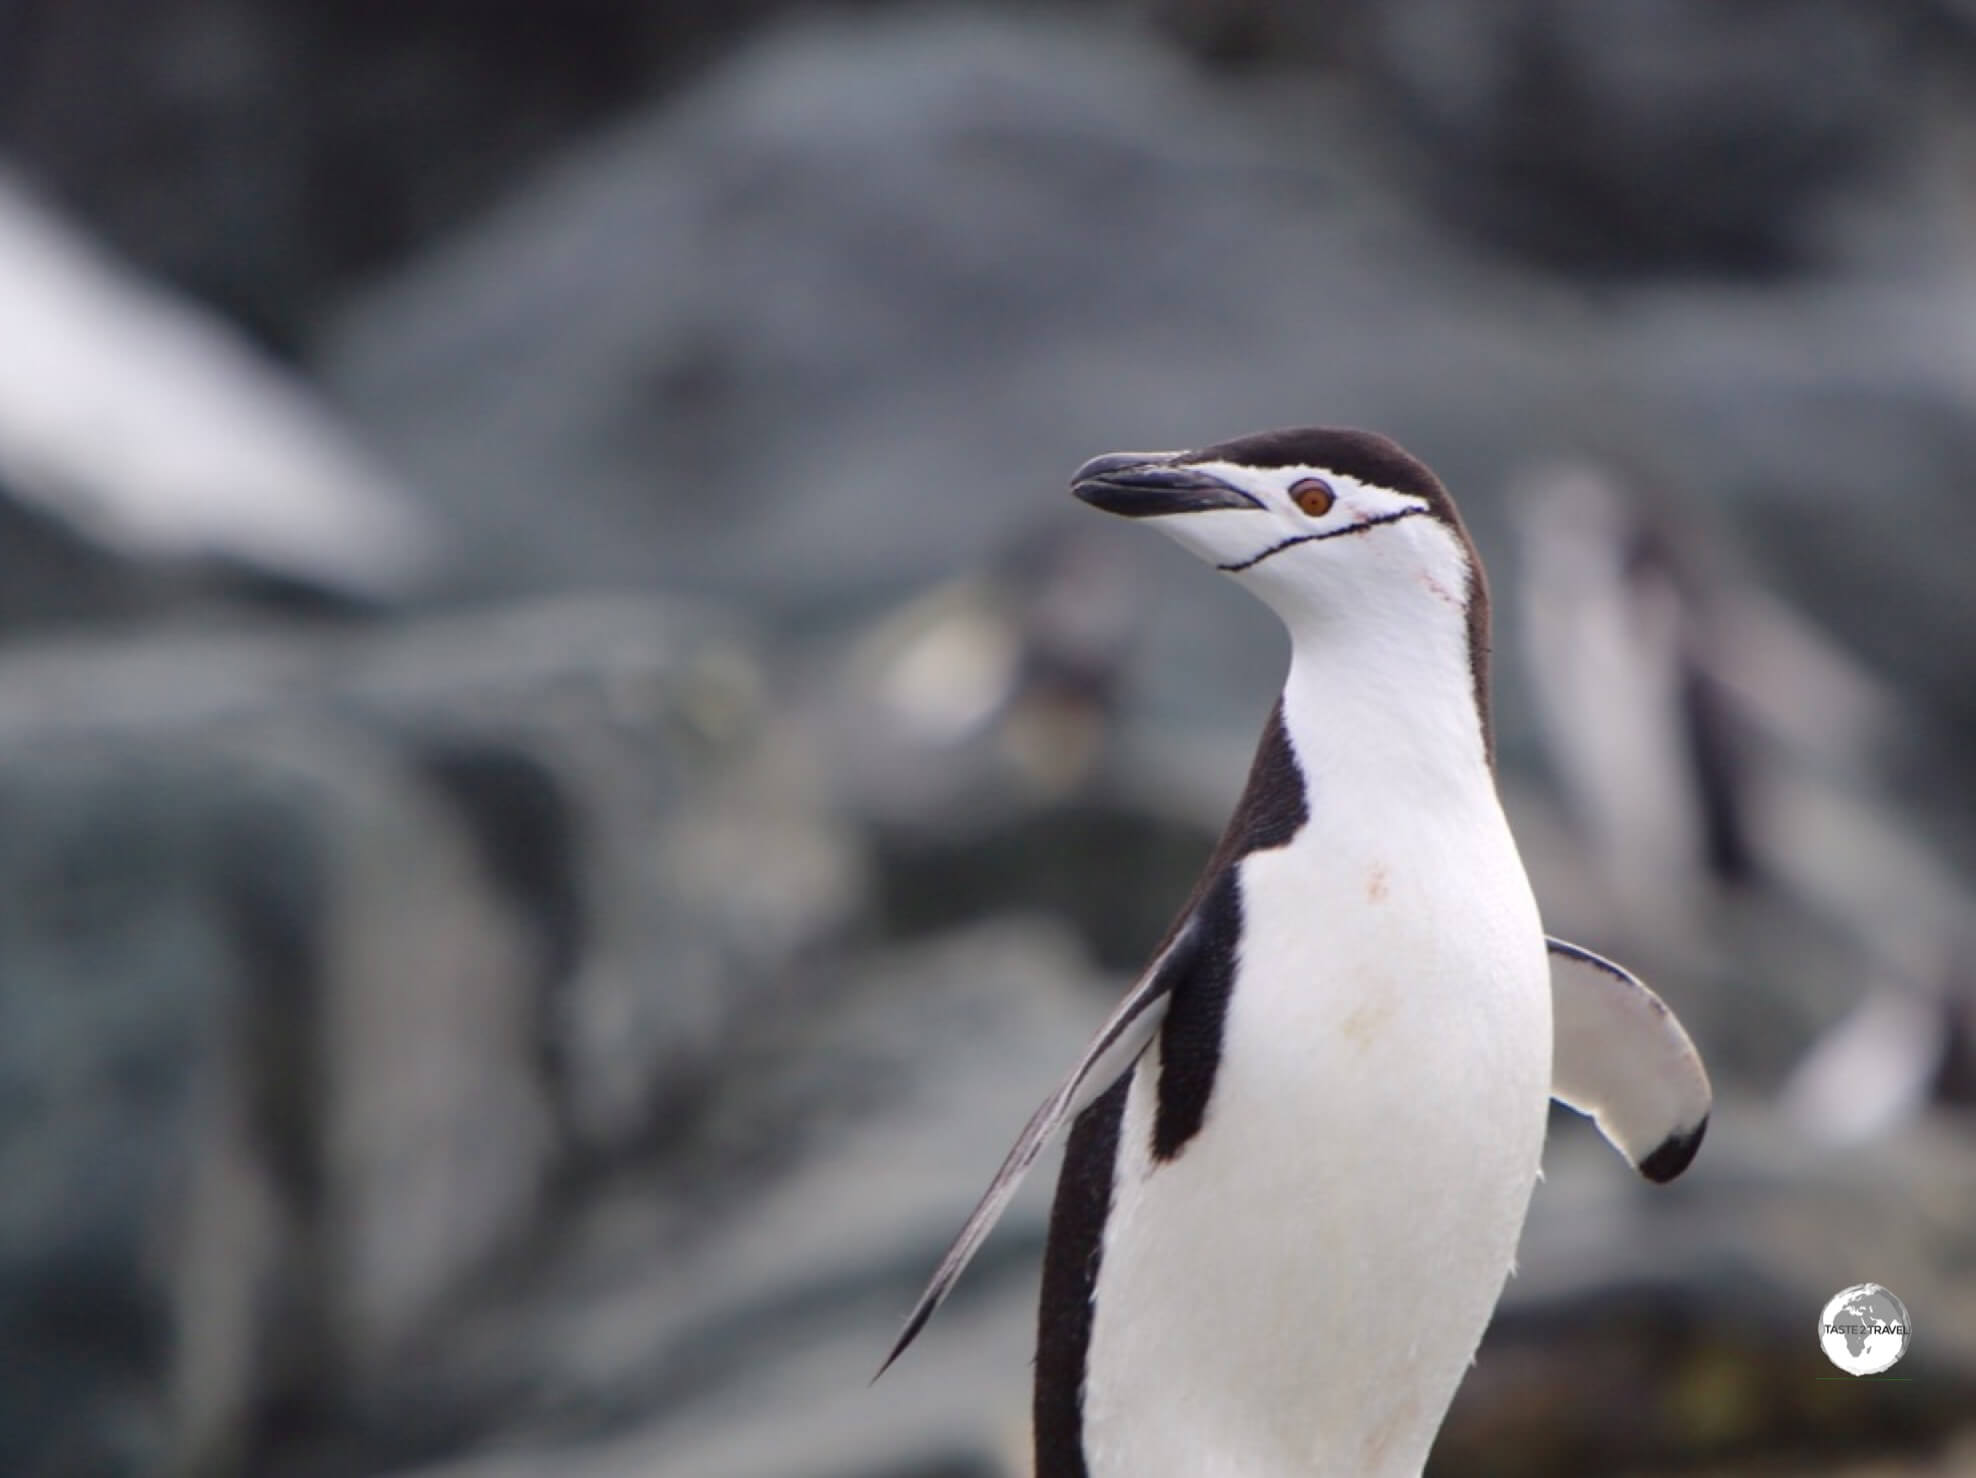 Chinstrap penguins get their name from the fine black line which runs, from cheek-to-cheek, across their white face.